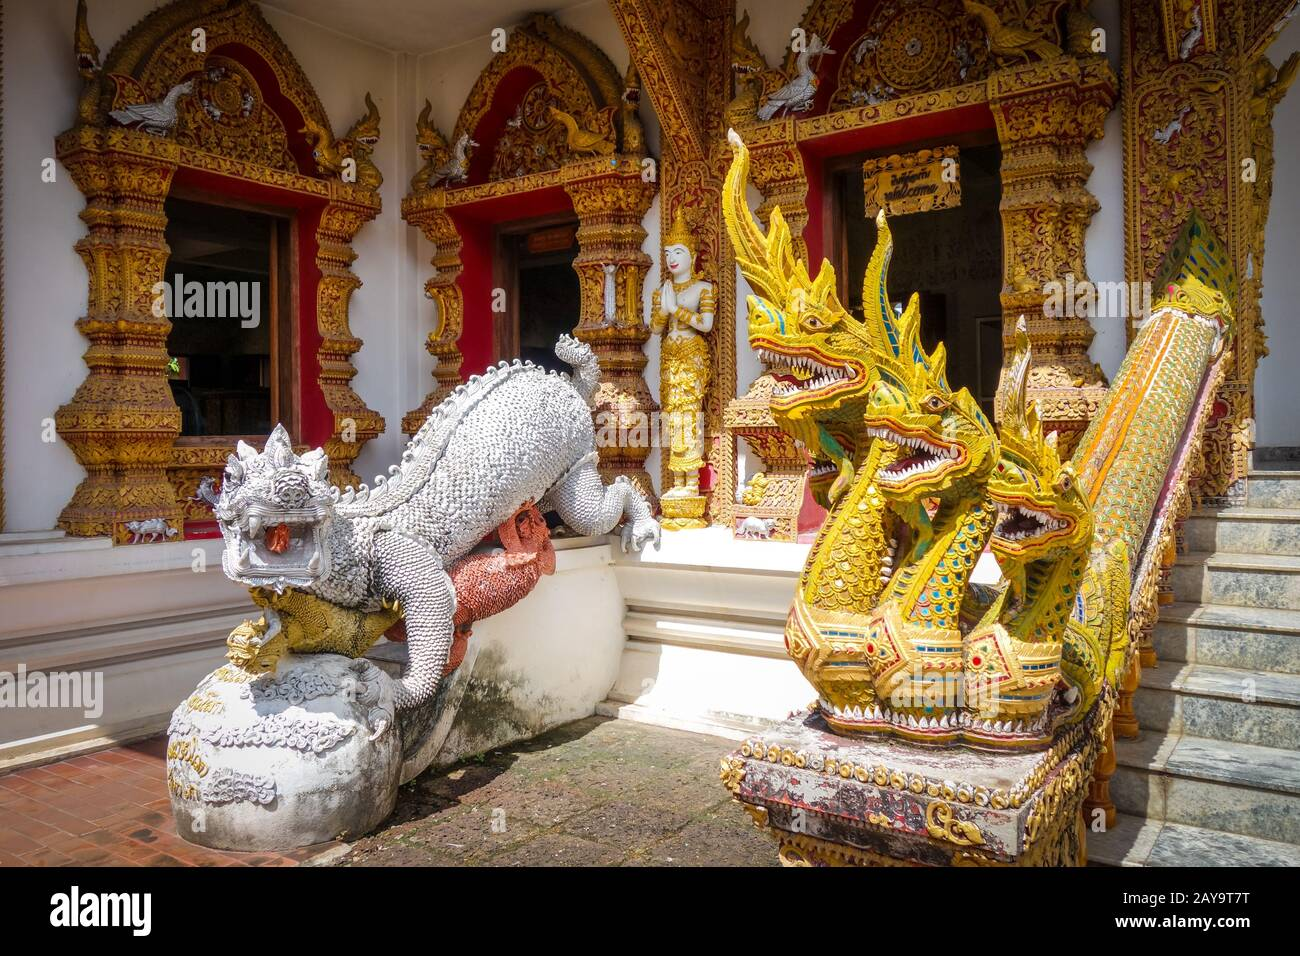 Statues in Wat Buppharam temple, Chiang Mai, Thailand Stock Photo